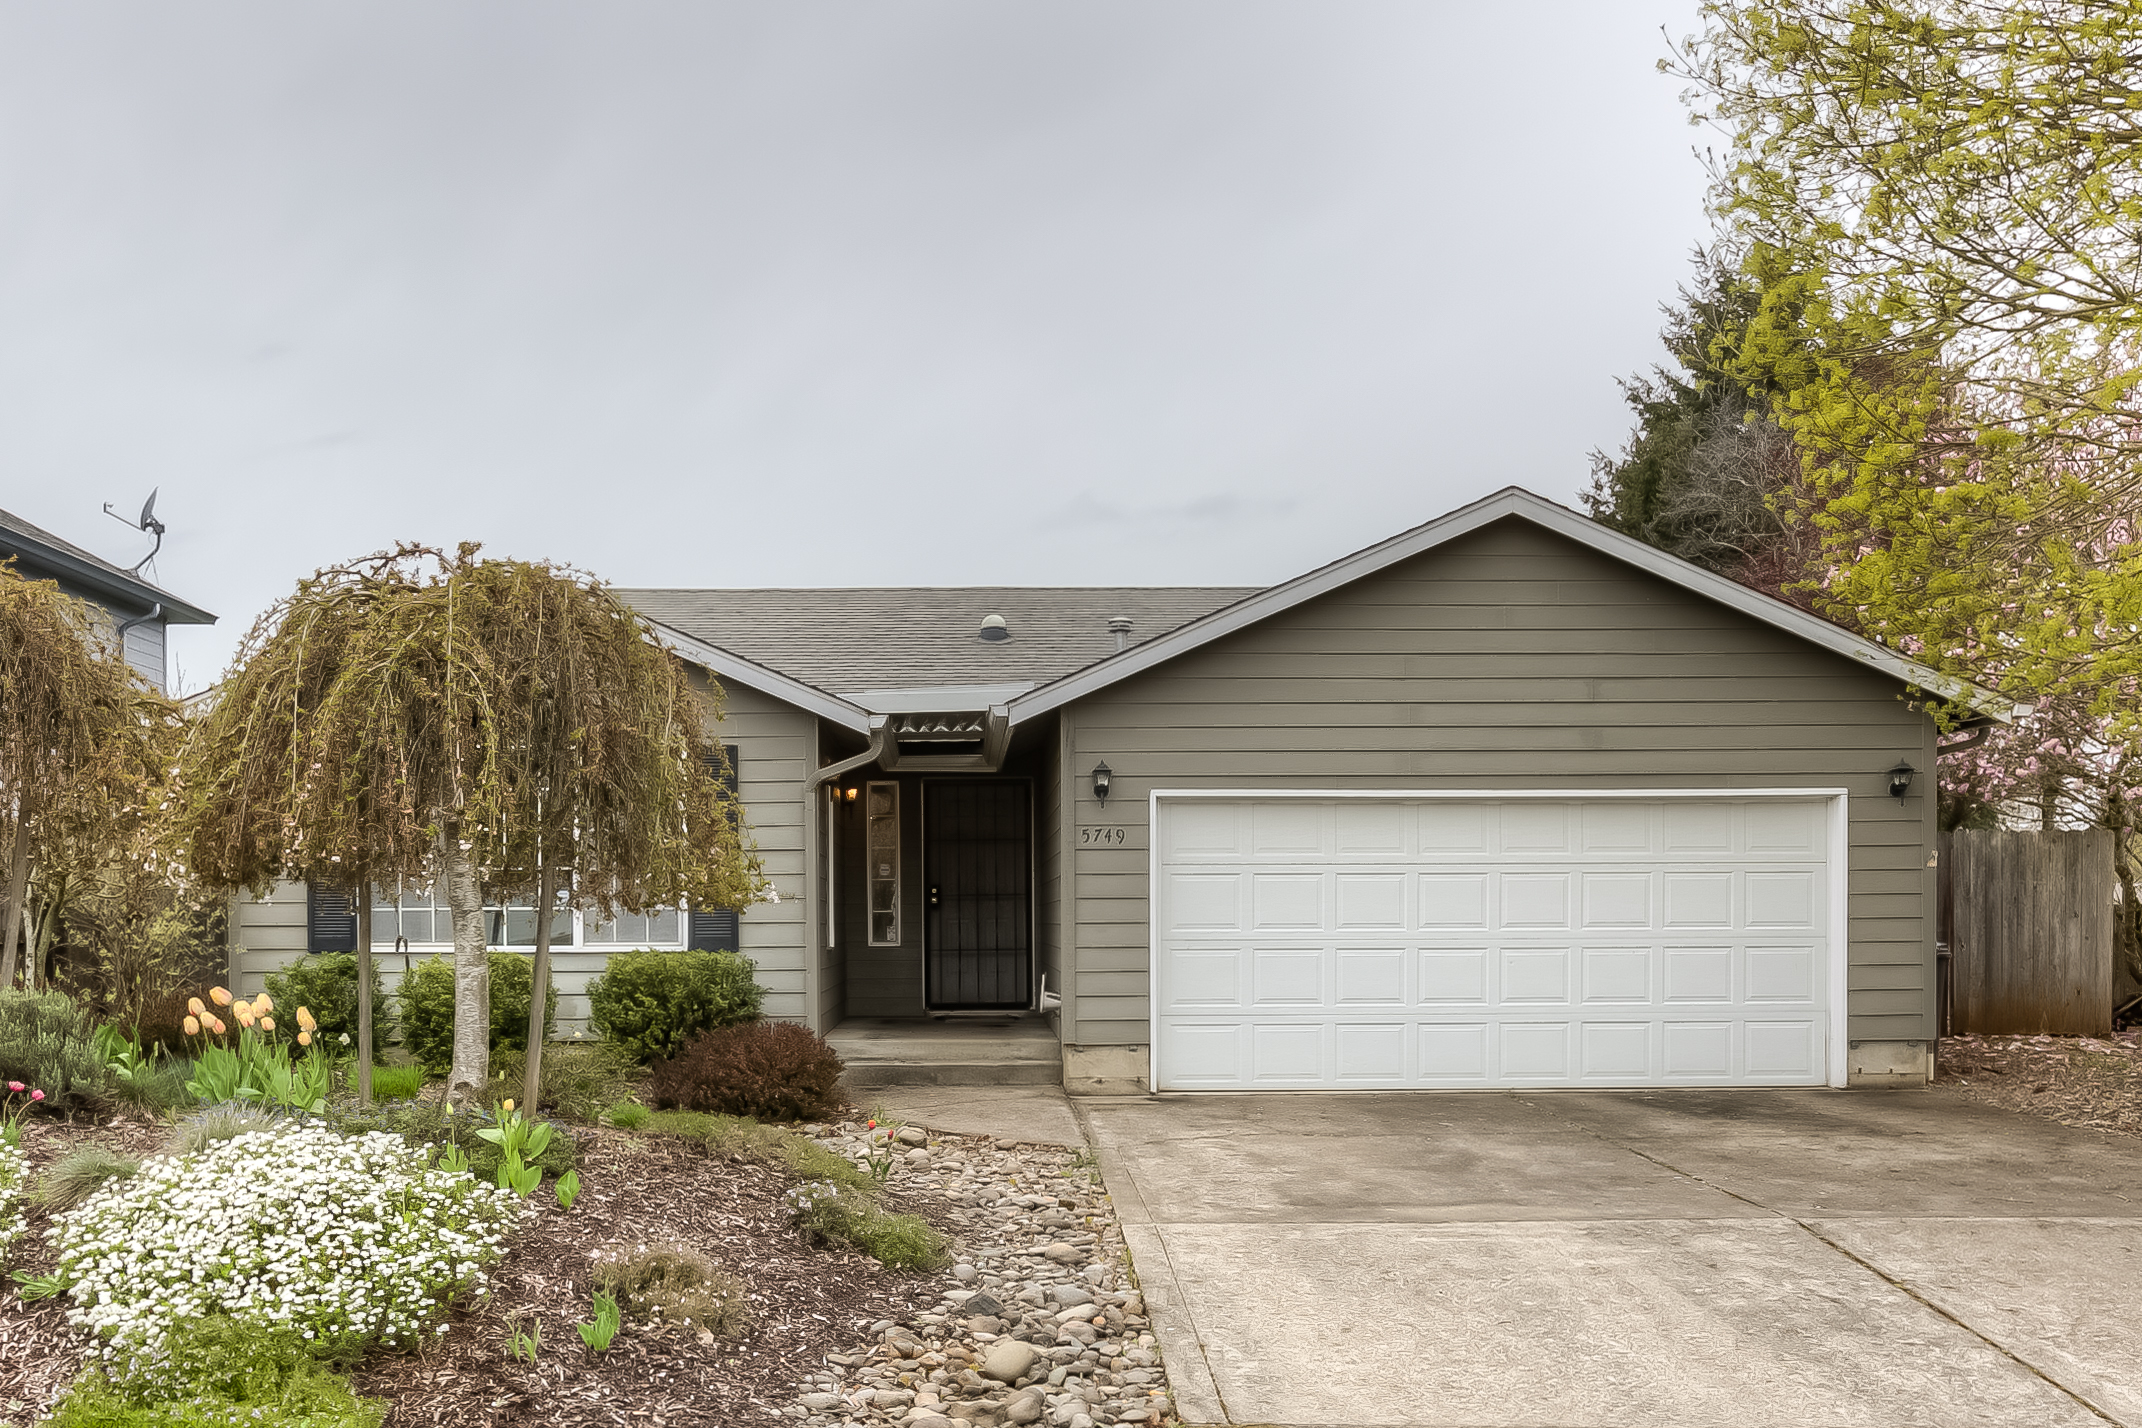 5749 Moonstone Lp: Darling Home in Quite South Salem Neighborhood!